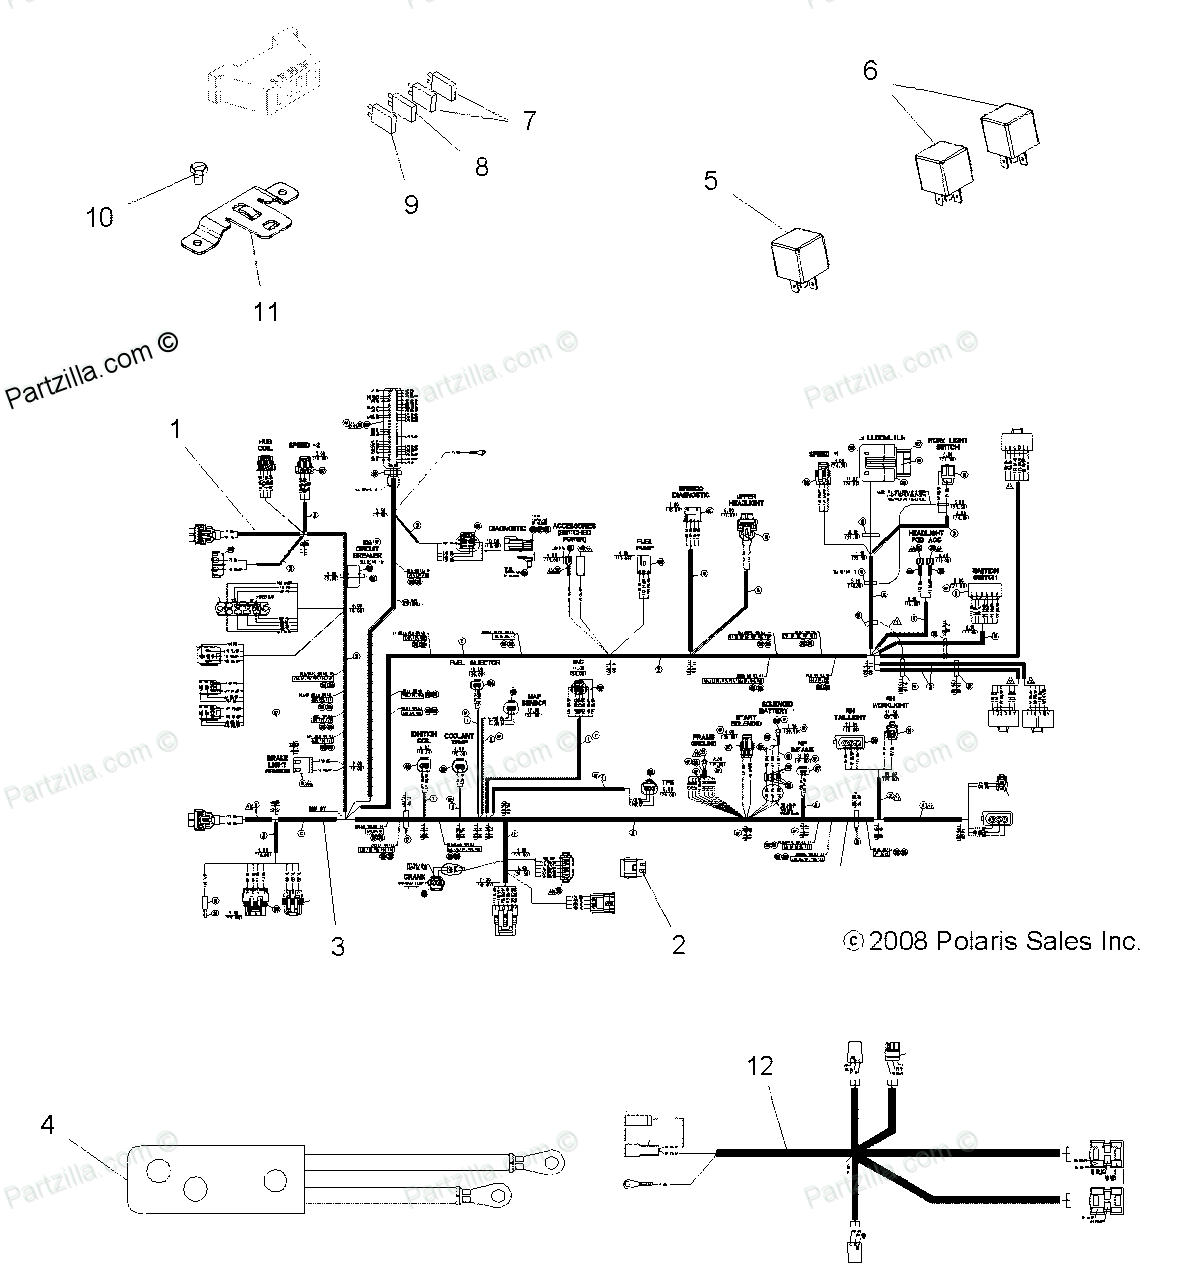 hight resolution of 2004 polaris sportsman 400 wiring diagram sample2004 polaris sportsman 400 wiring diagram 2004 polaris sportsman 600